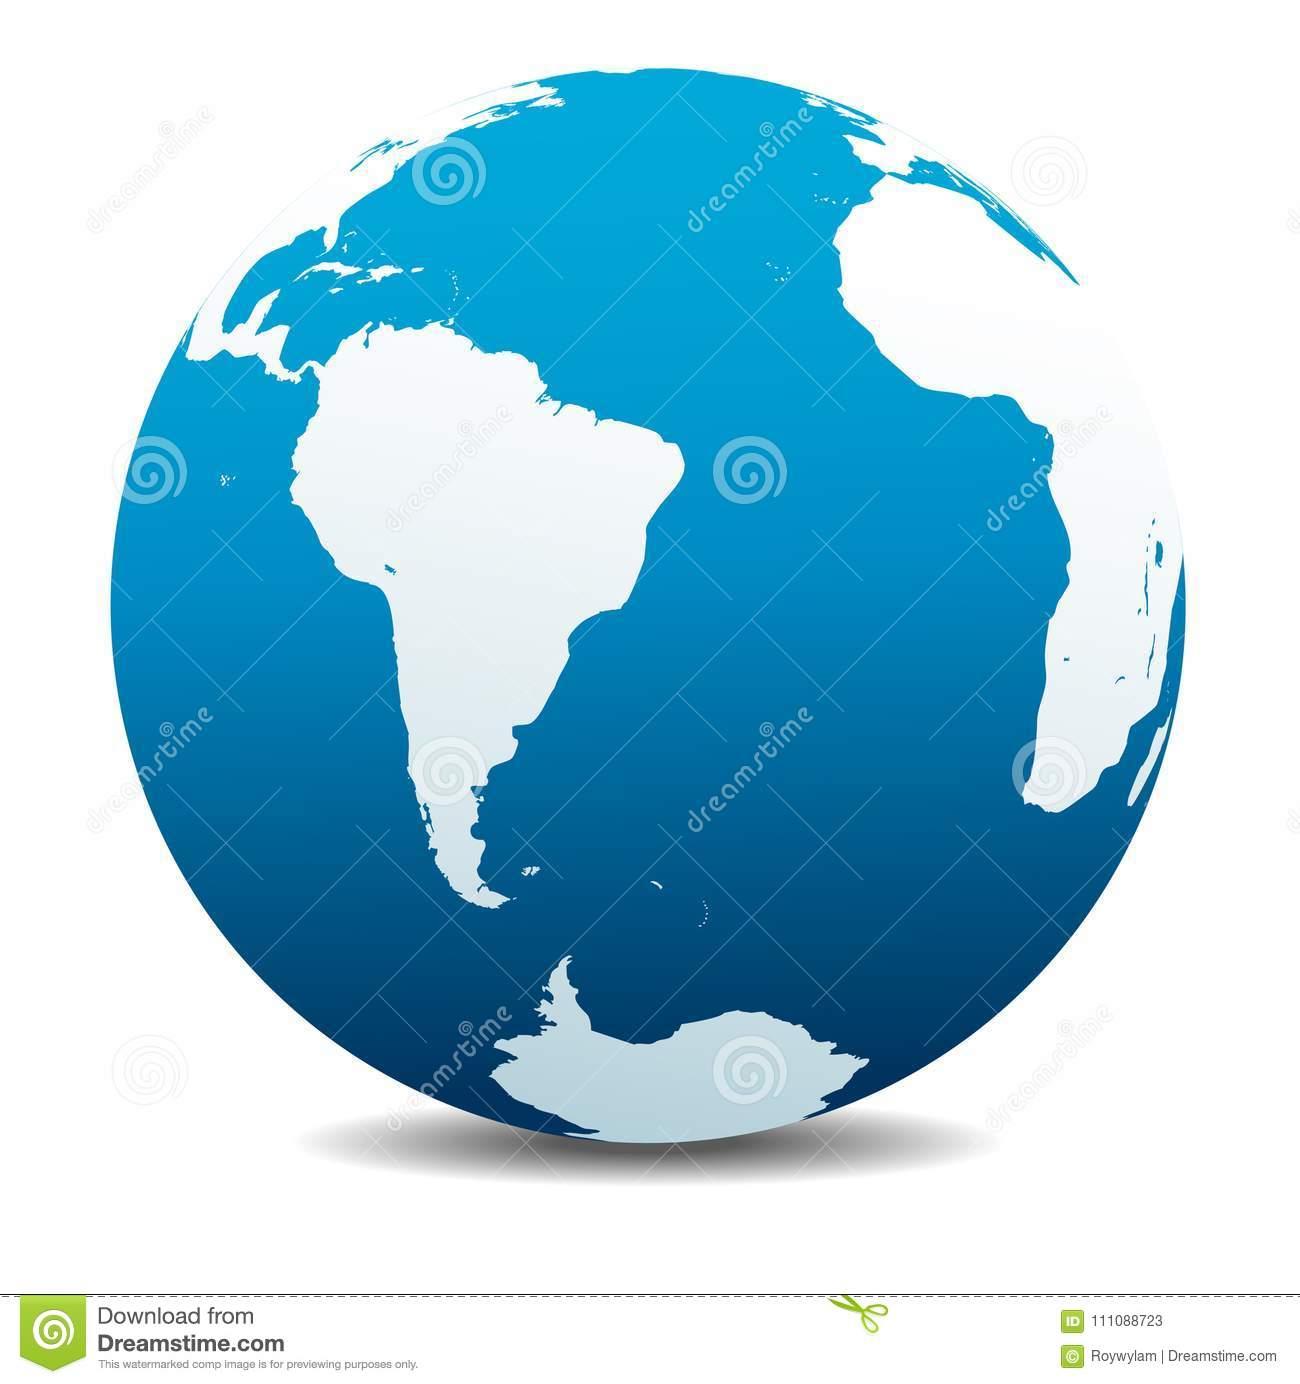 South America And Africa Global World Planet Earth Icon ... on global map india, satellite of earth, global satellite maps, aerial photography of earth, blackline of earth, gps of earth, globe of earth, global view of the earth, resources of earth, global climate earth, global maps of north pole, global map view, global map water, united states of earth, global maps live, radar of earth, global map light, global map continents, global hemisphere map, global earth map residential homes,